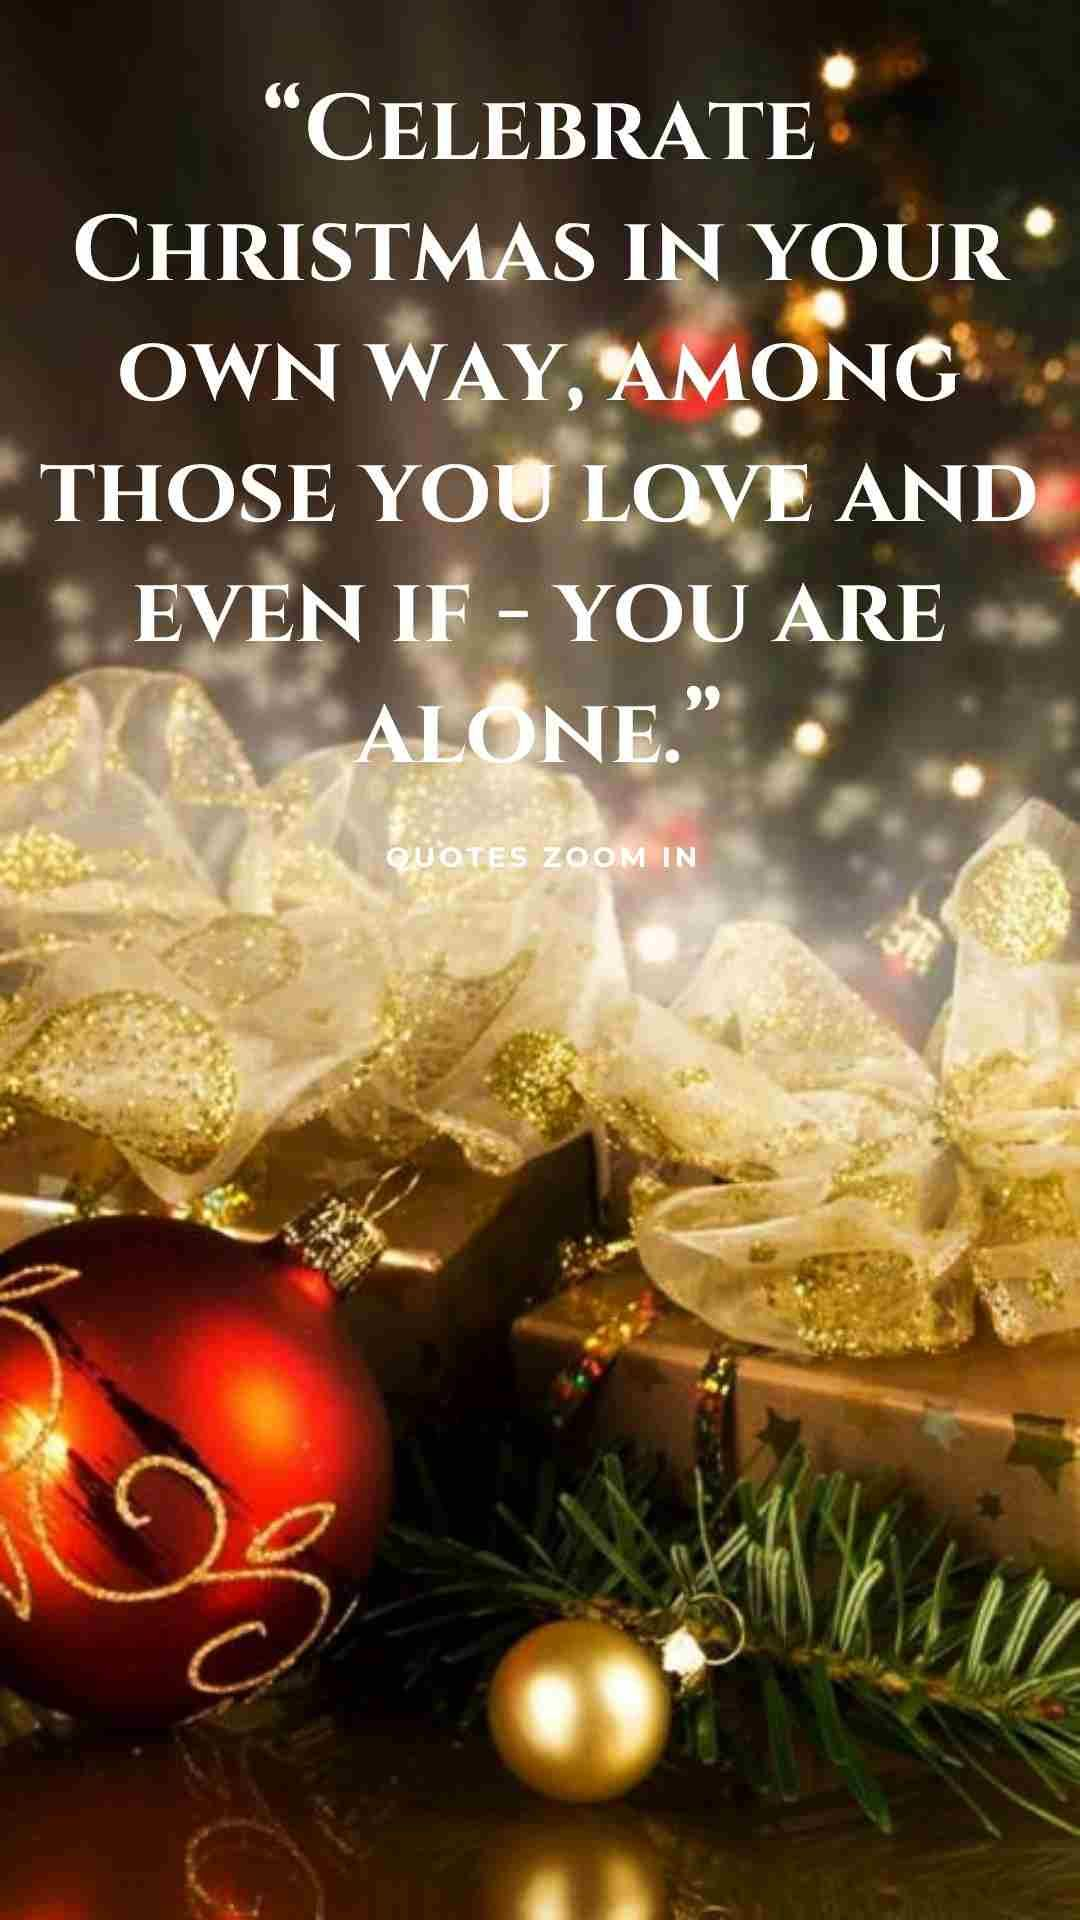 Christmas Wallpaper Quotes Xmas Season Greetings Merrychristmasquotes Merrychristmasgreetings Merry Christmas Quotes Christmas Card Sayings Christmas Quotes